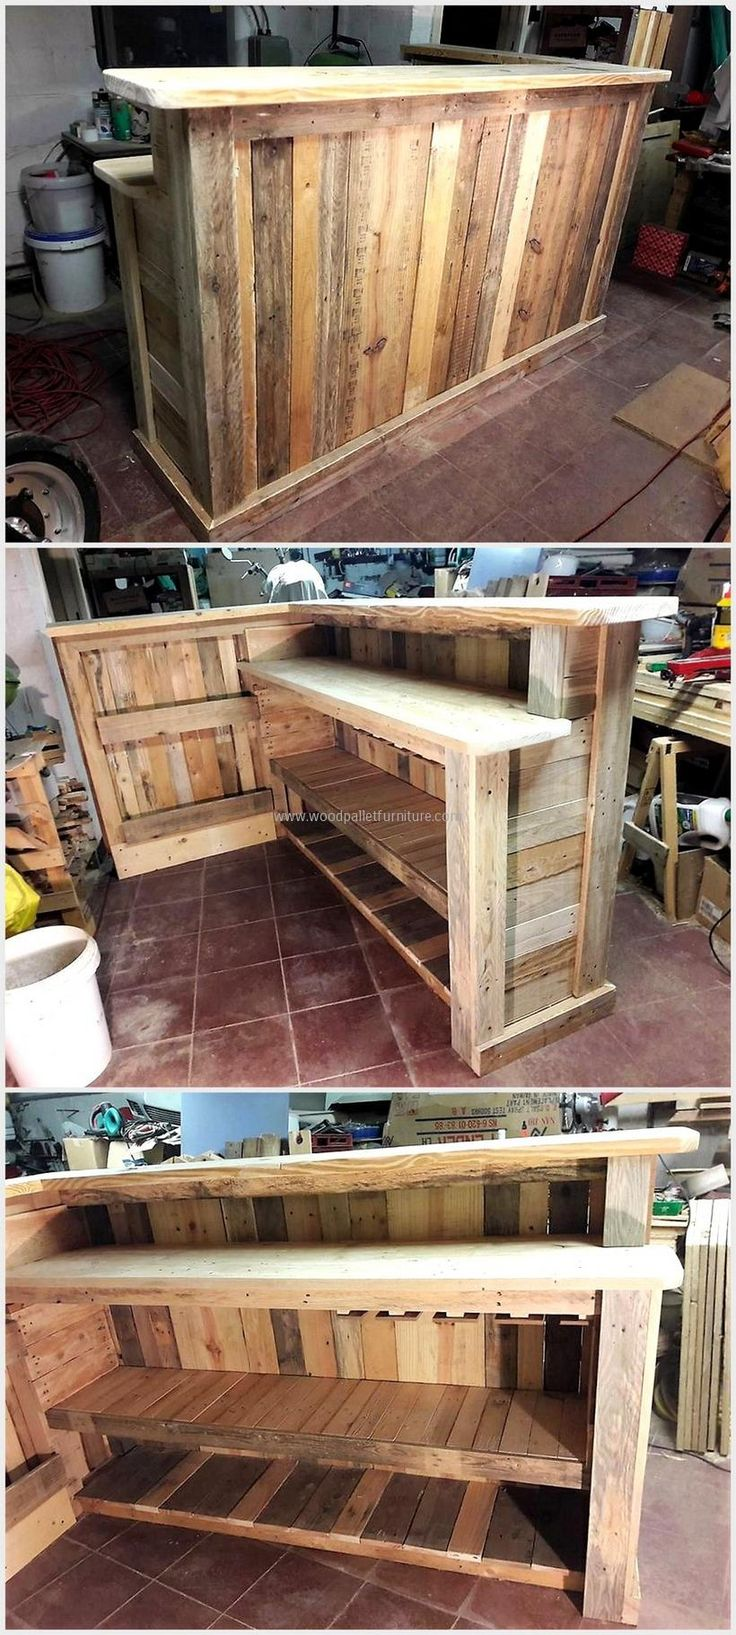 https://i.pinimg.com/736x/b4/9f/a8/b49fa8e77f52d2819b946c1206f65642--patio-bar-ideas-outdoor-pallet-bar-diy-outdoor.jpg